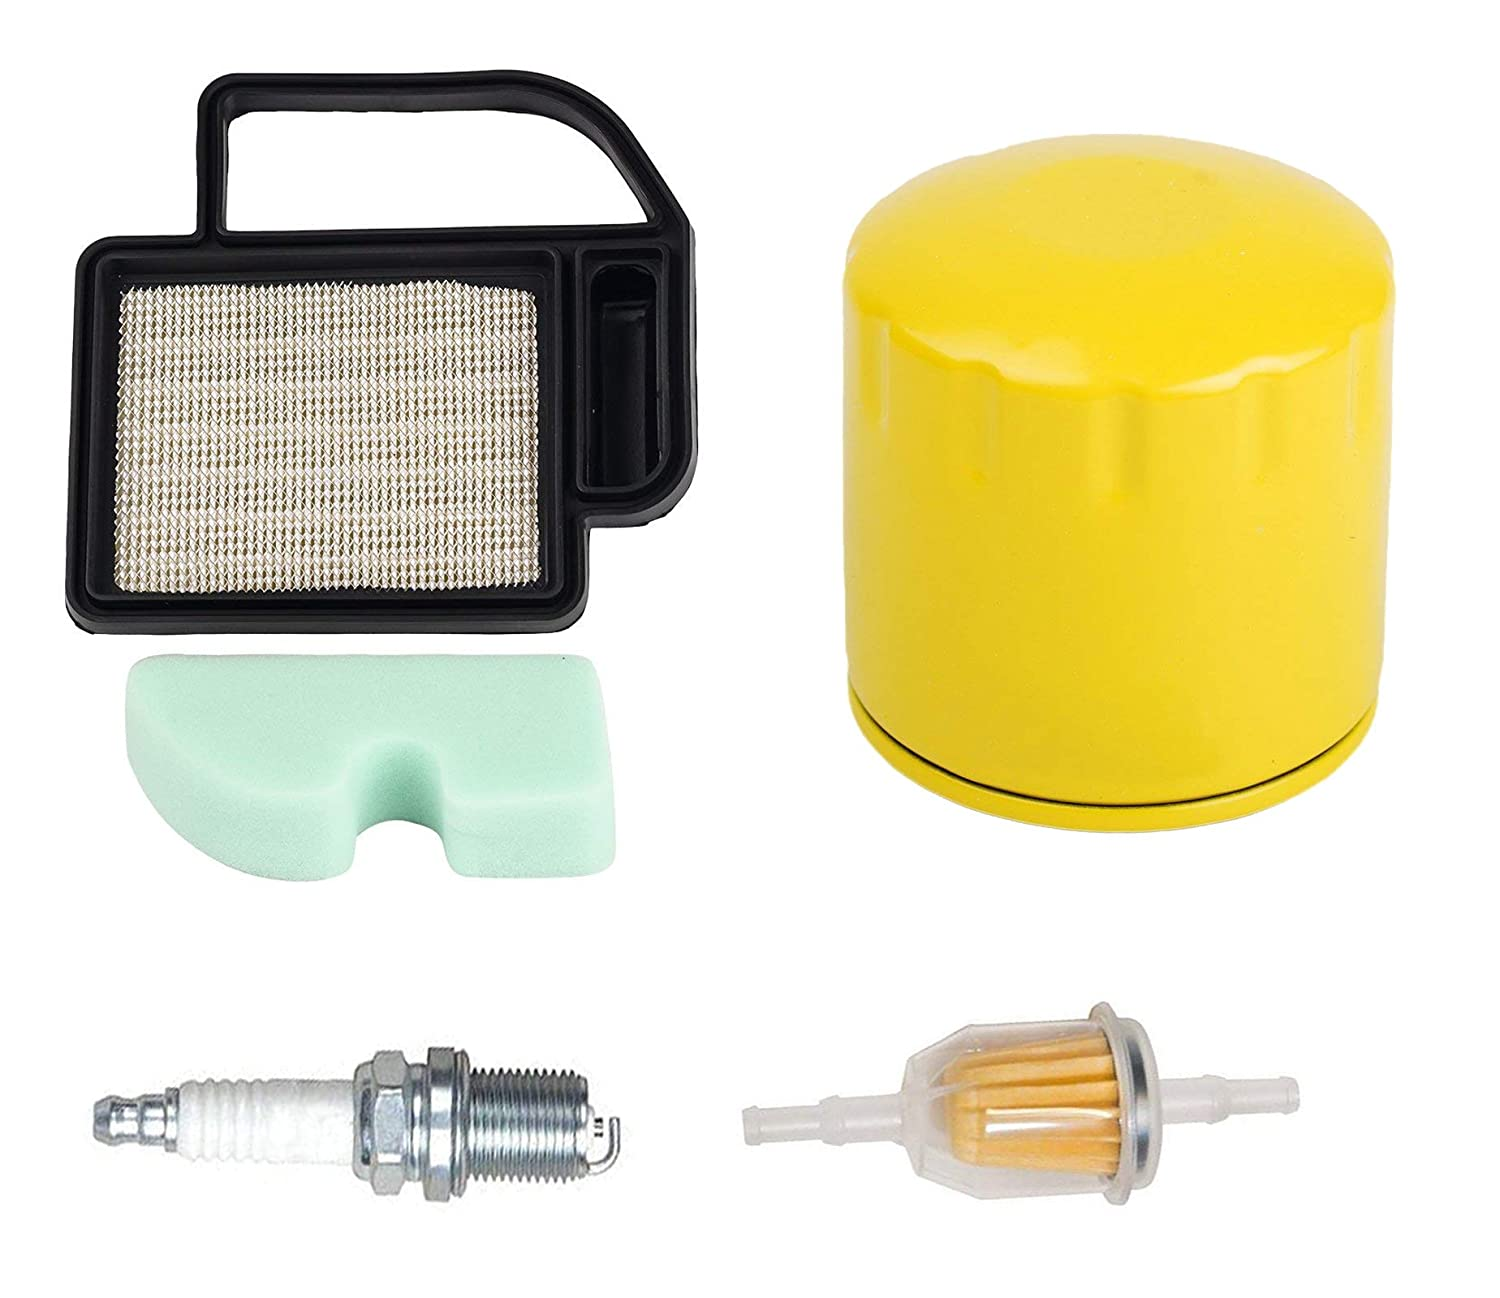 OxoxO Replace Air Pre Filter Fuel Filter Oil Filter with Spark Plug for Kohler SV470-610 15-21 Replace 20-083-06-S 20-083-02S 2008302 Cub Cadet KH-20 883 02-S1 Craftsman 24642 Ariens 21541600